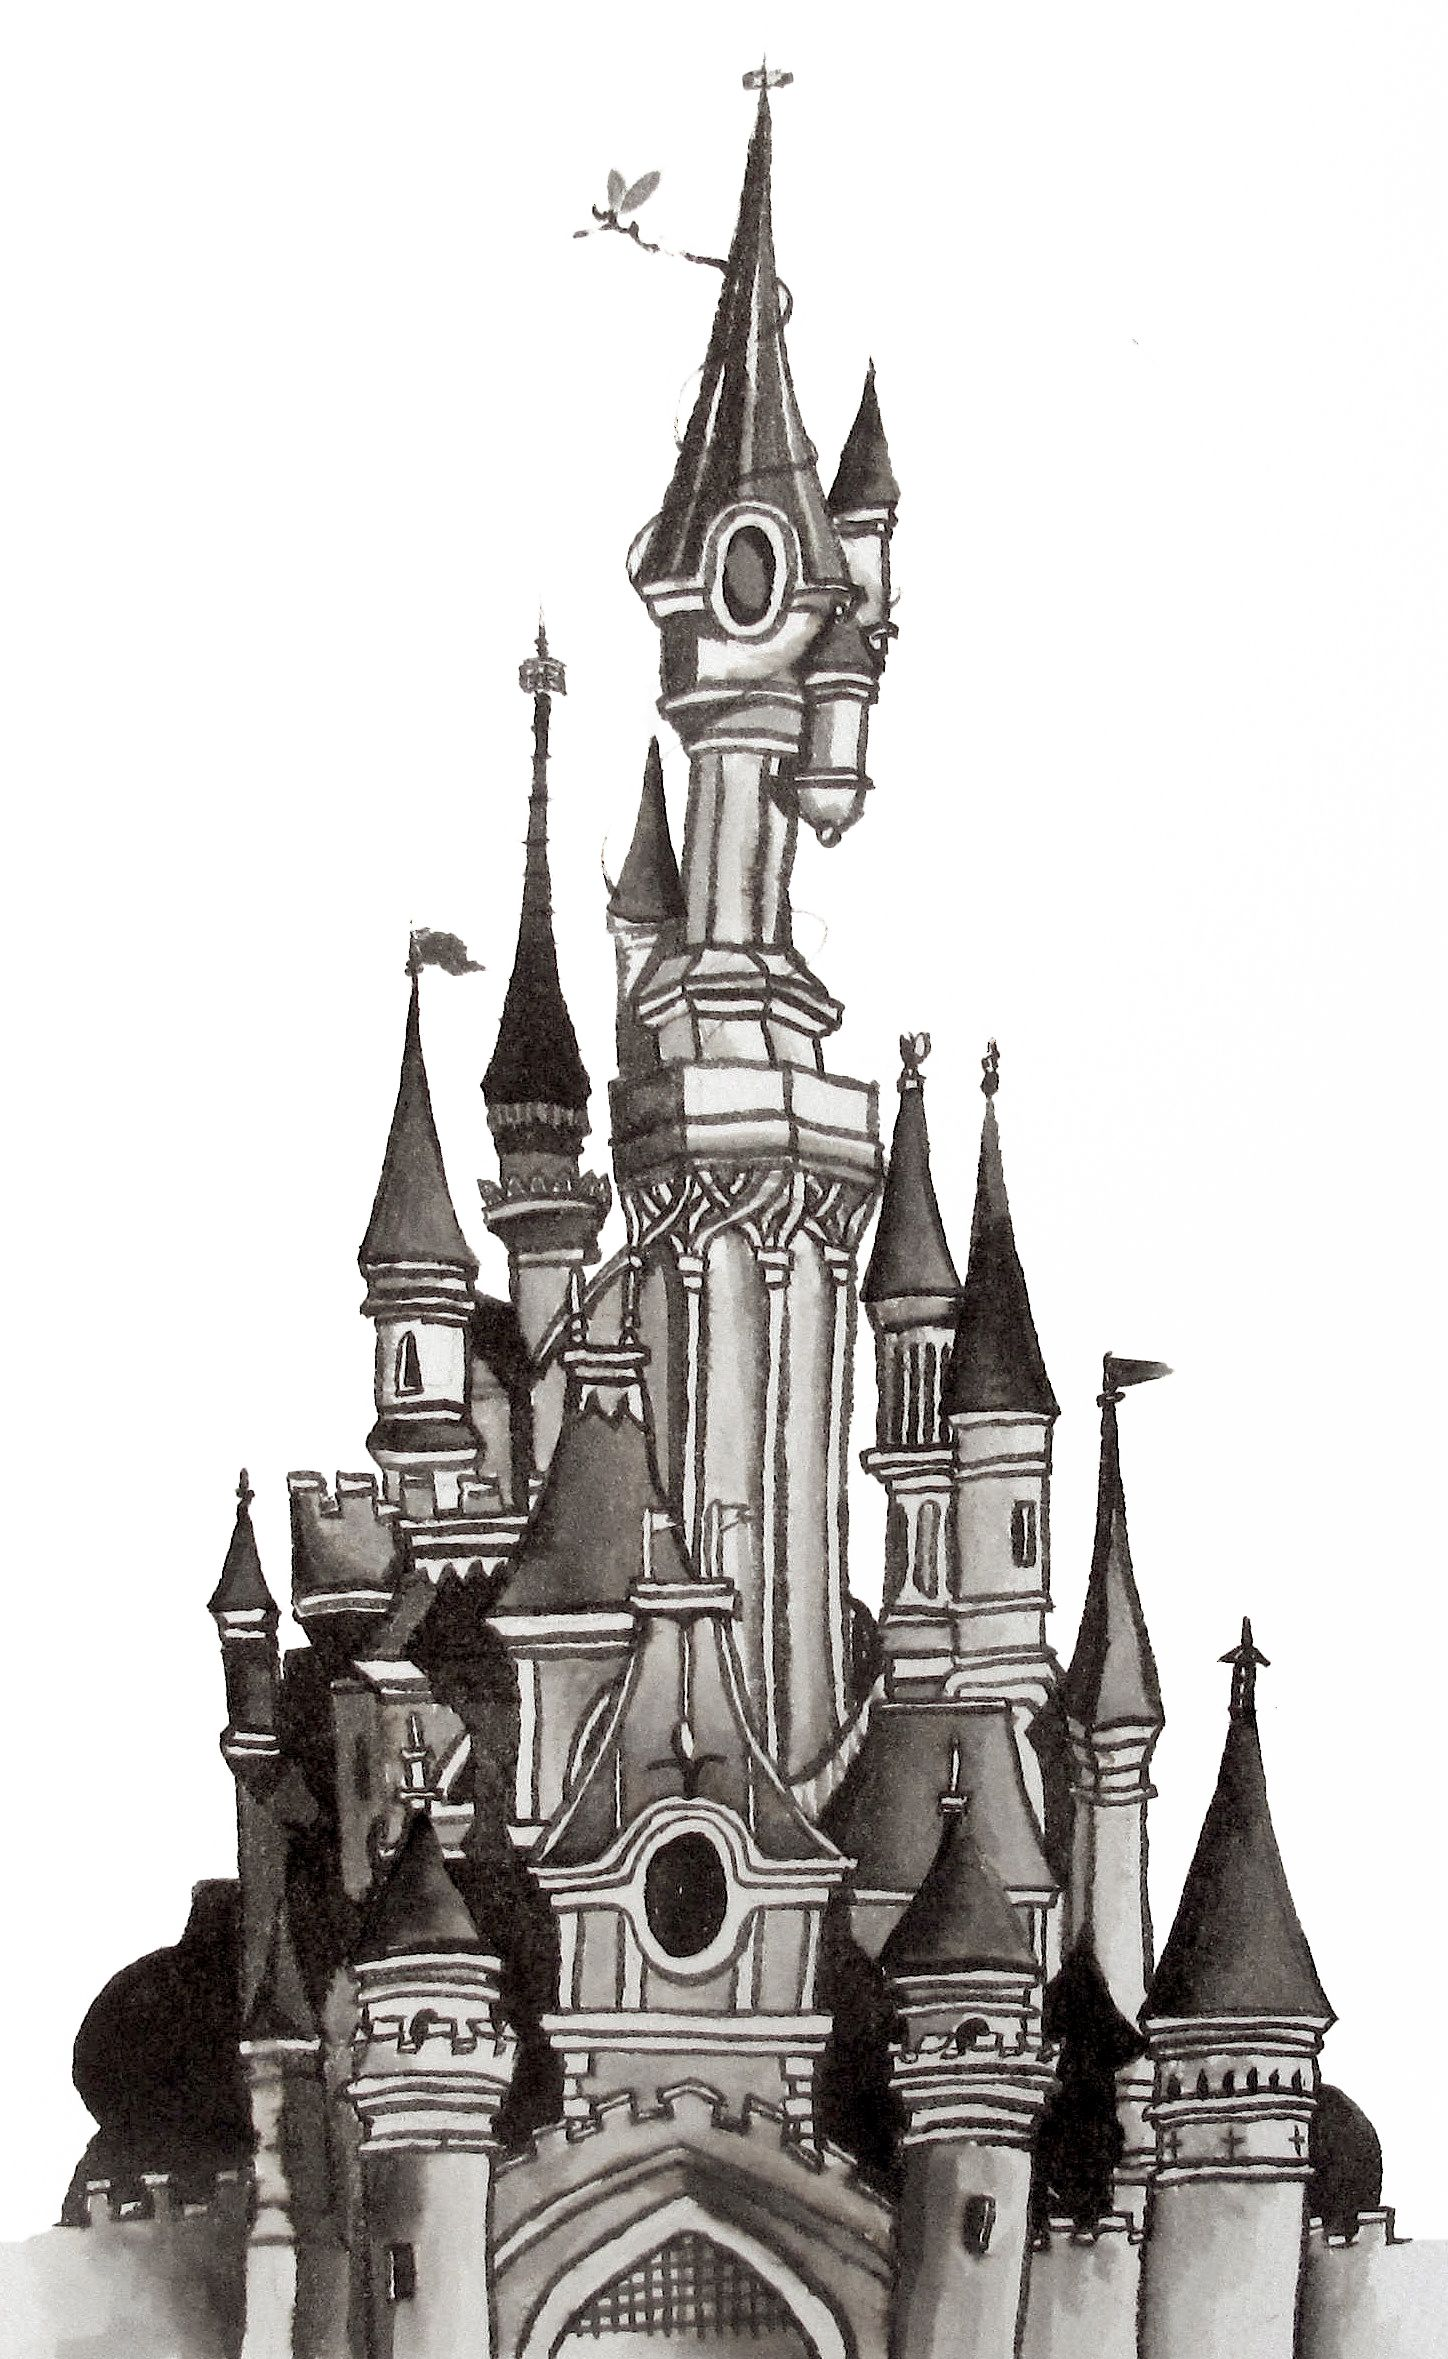 Snow castle clipart black and white sketch svg black and white Architectural Ink drawing Illustration of the Disneyland ... svg black and white